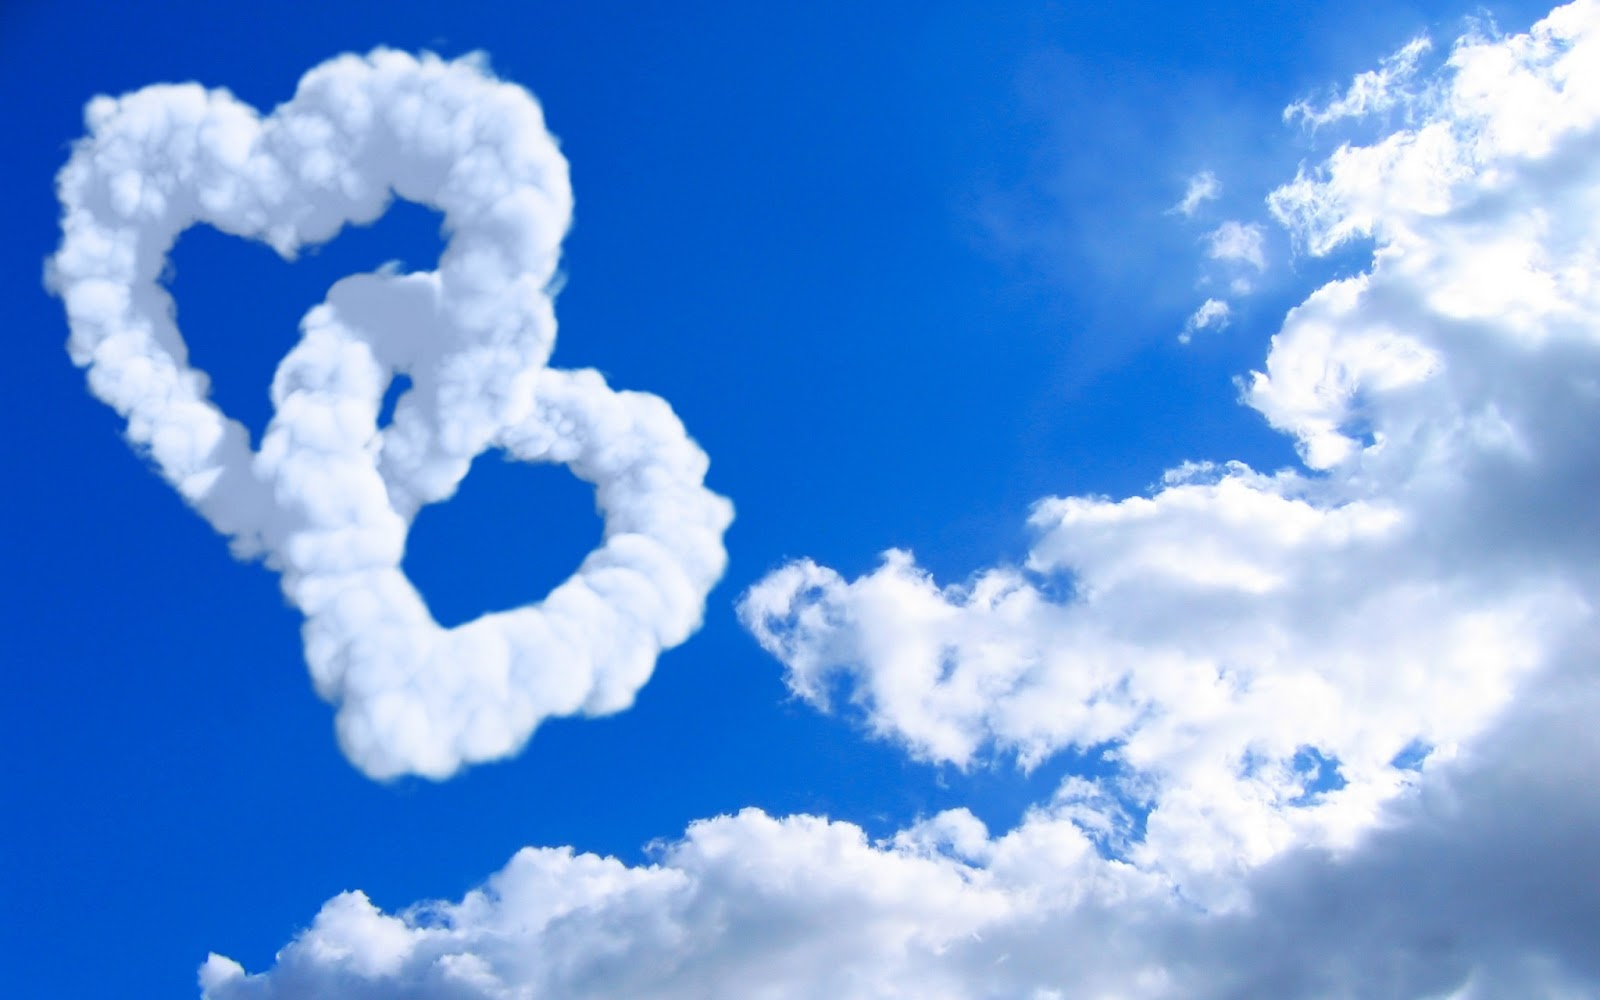 Love Wallpaper Photo Gallery : 3d love with clouds wallpaper, wallpaper for desktop Amazing Wallpapers